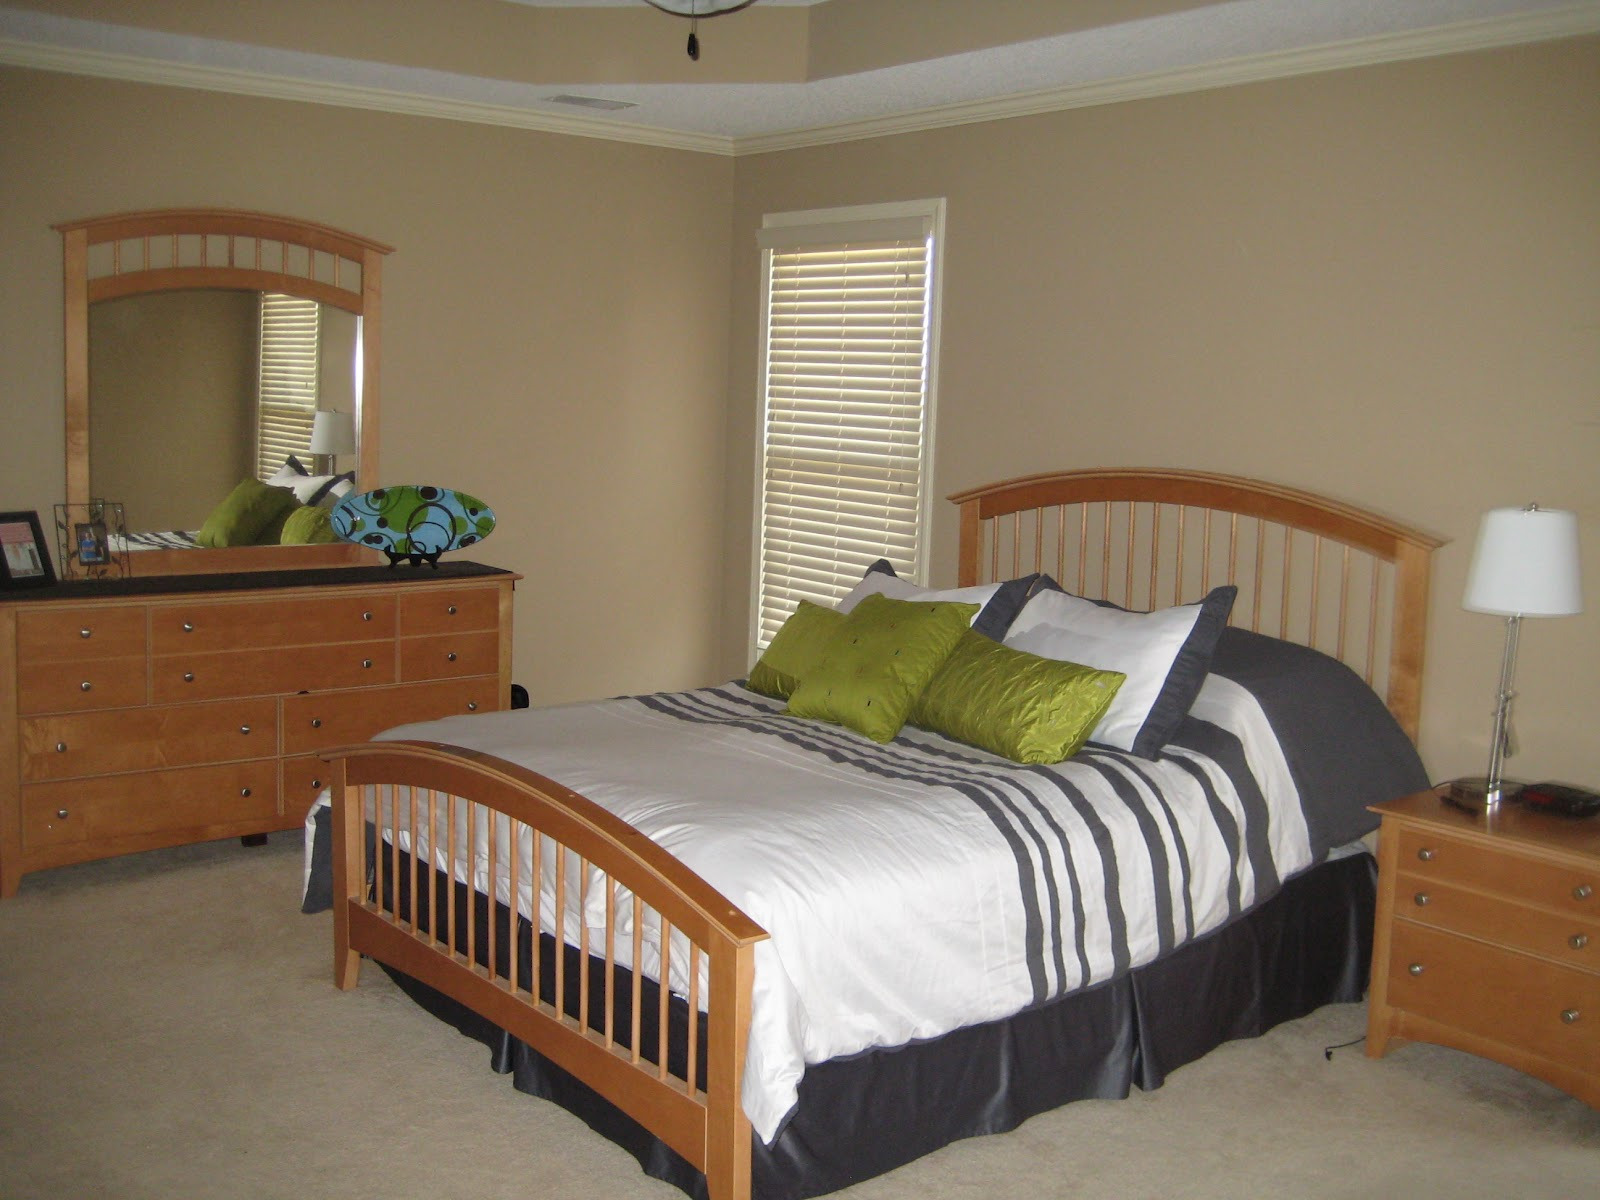 Painted Dreams Of Life Family Home Master Bedroom Furniture Rearrangement